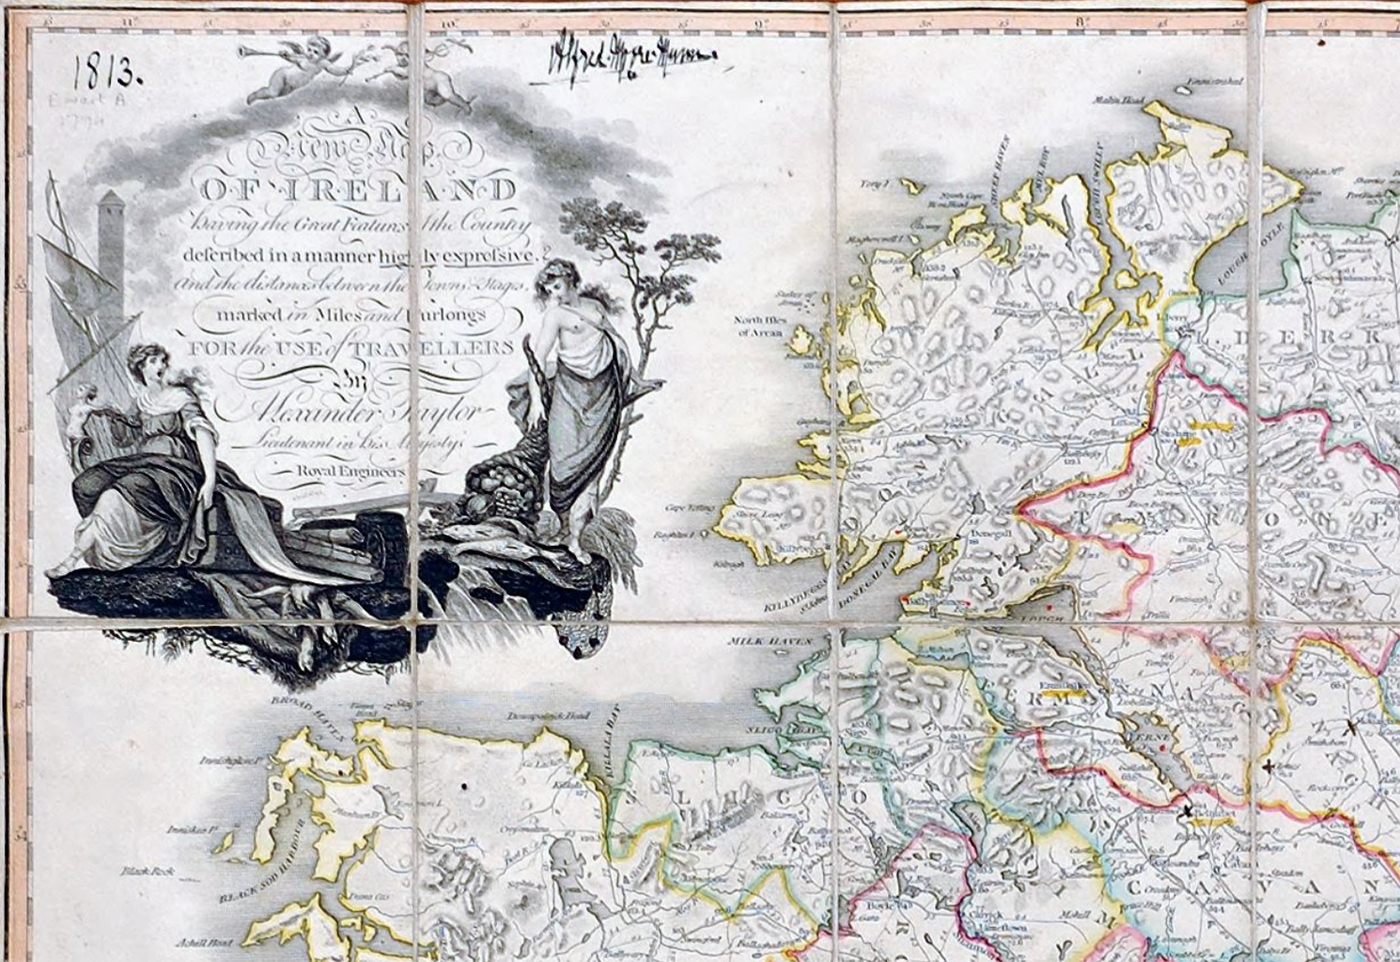 Map of Ireland by Alexander Taylor (1794), from the Ewart Map Collection. Courtesy of Queen's University Belfast.